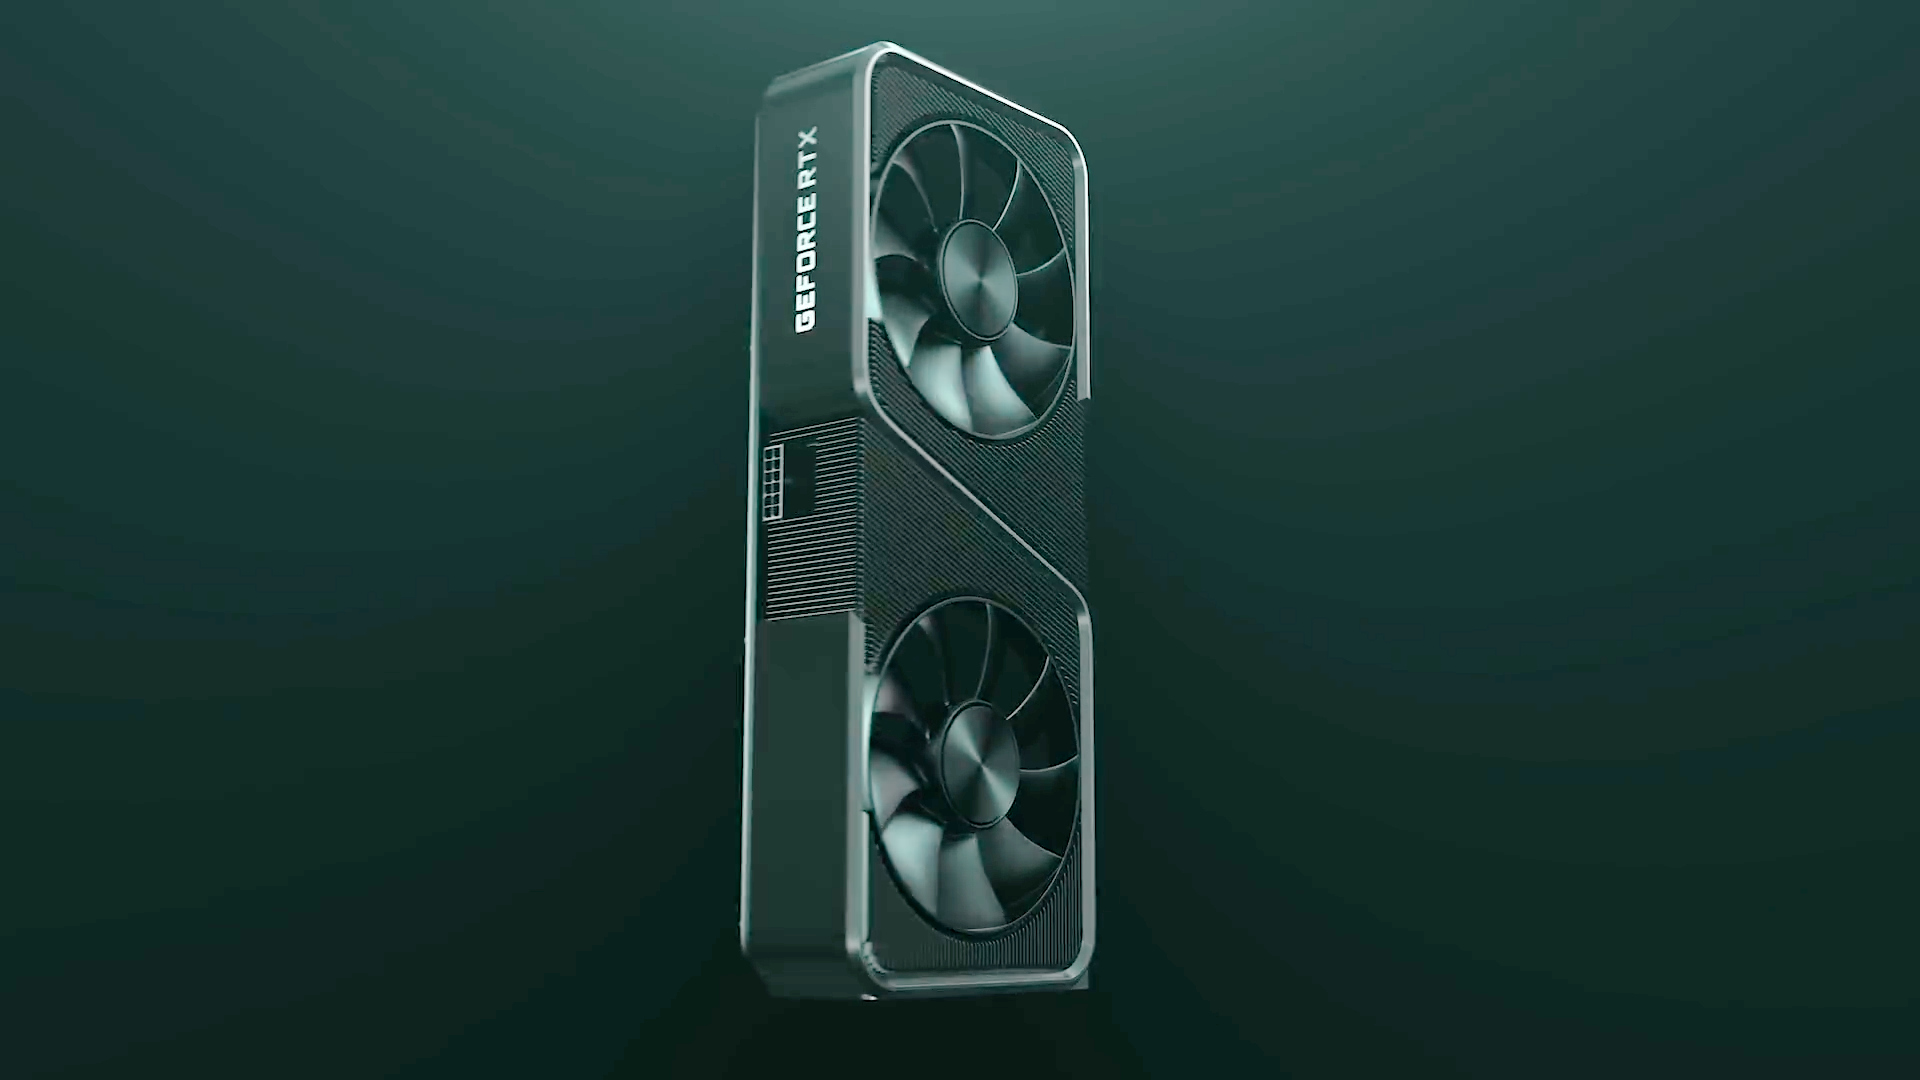 Video: Nvidia's RTX 3060 aims to deter crypto-miners